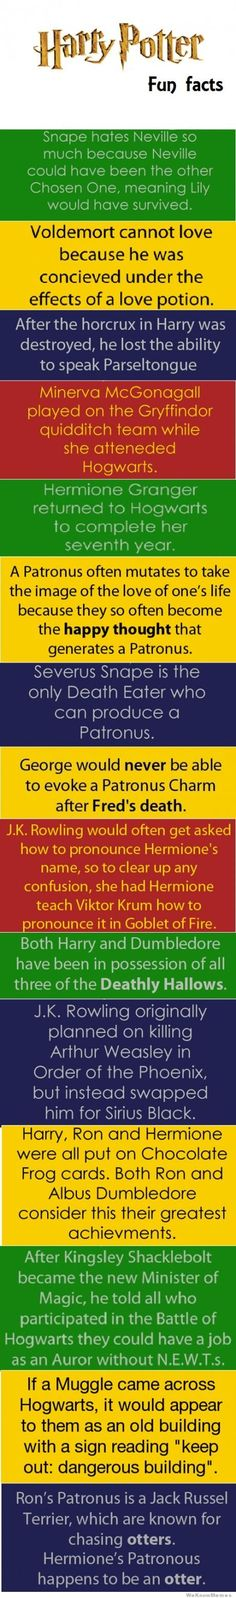 "This just created a wave of emotion... Are these really true?  Did all of these ""facts"" come from J.K. Rowling? I need to know!  The one about Sirius makes me really sad although I would miss Arthur too..."